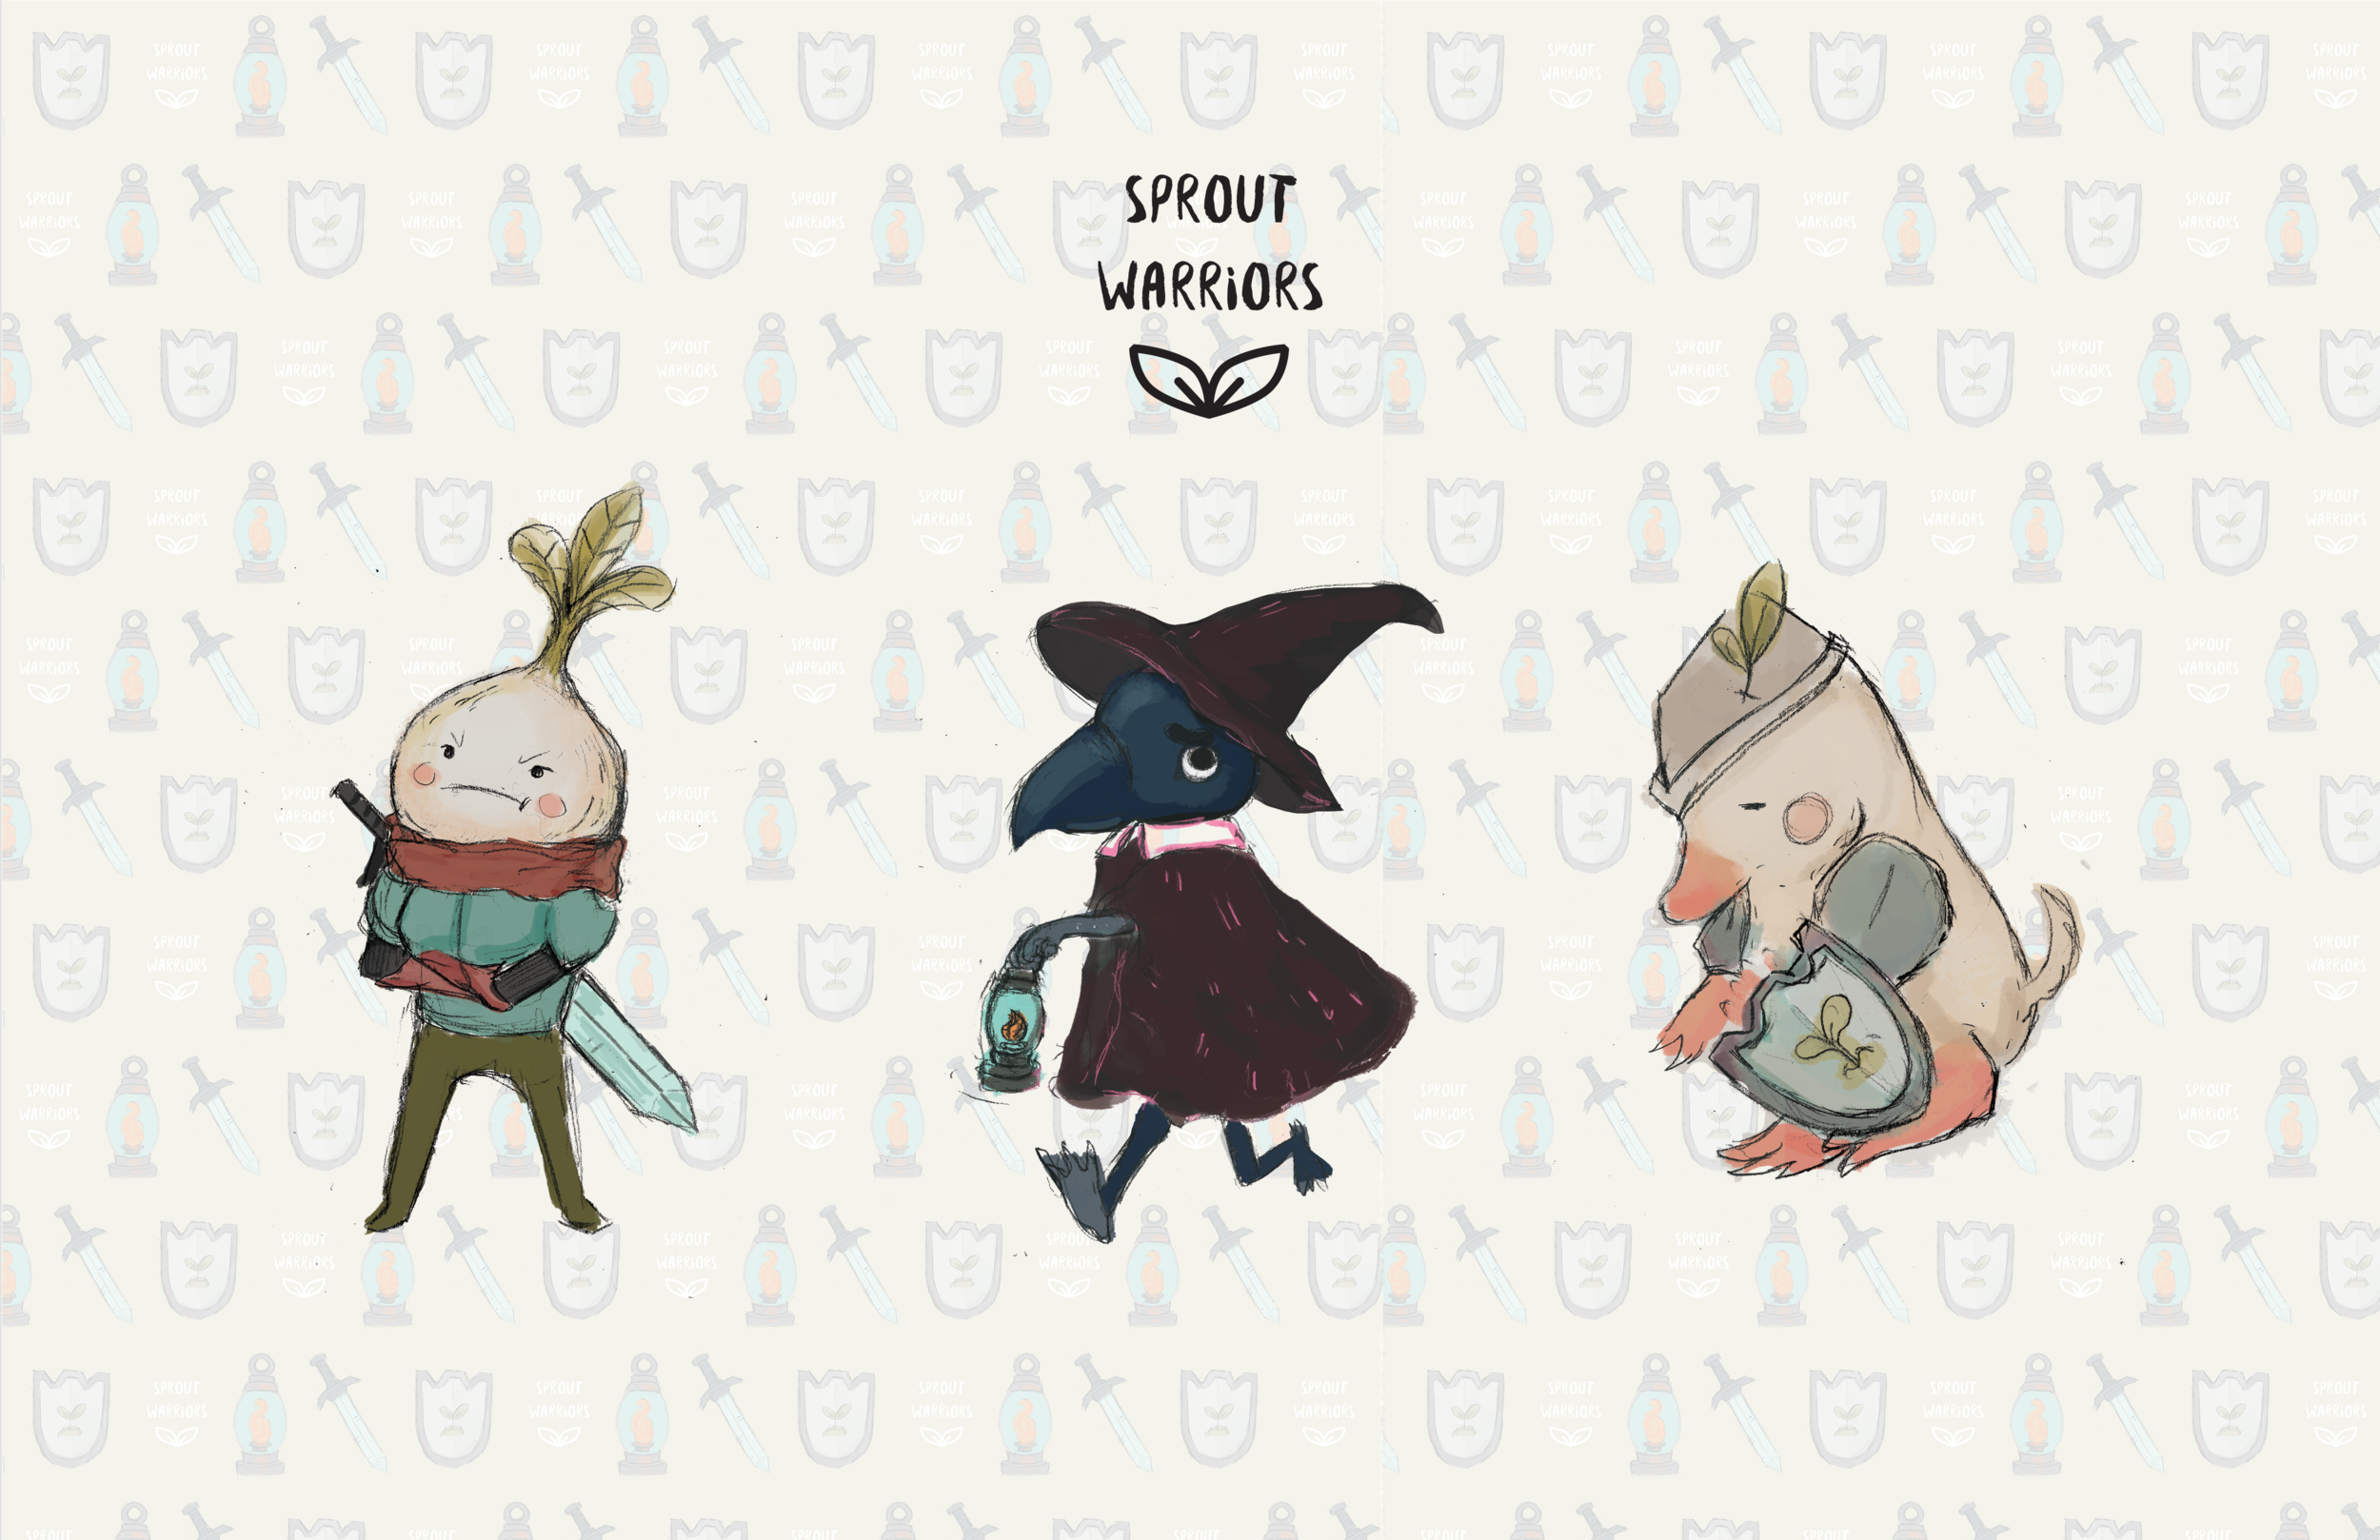 Sprout Warriors